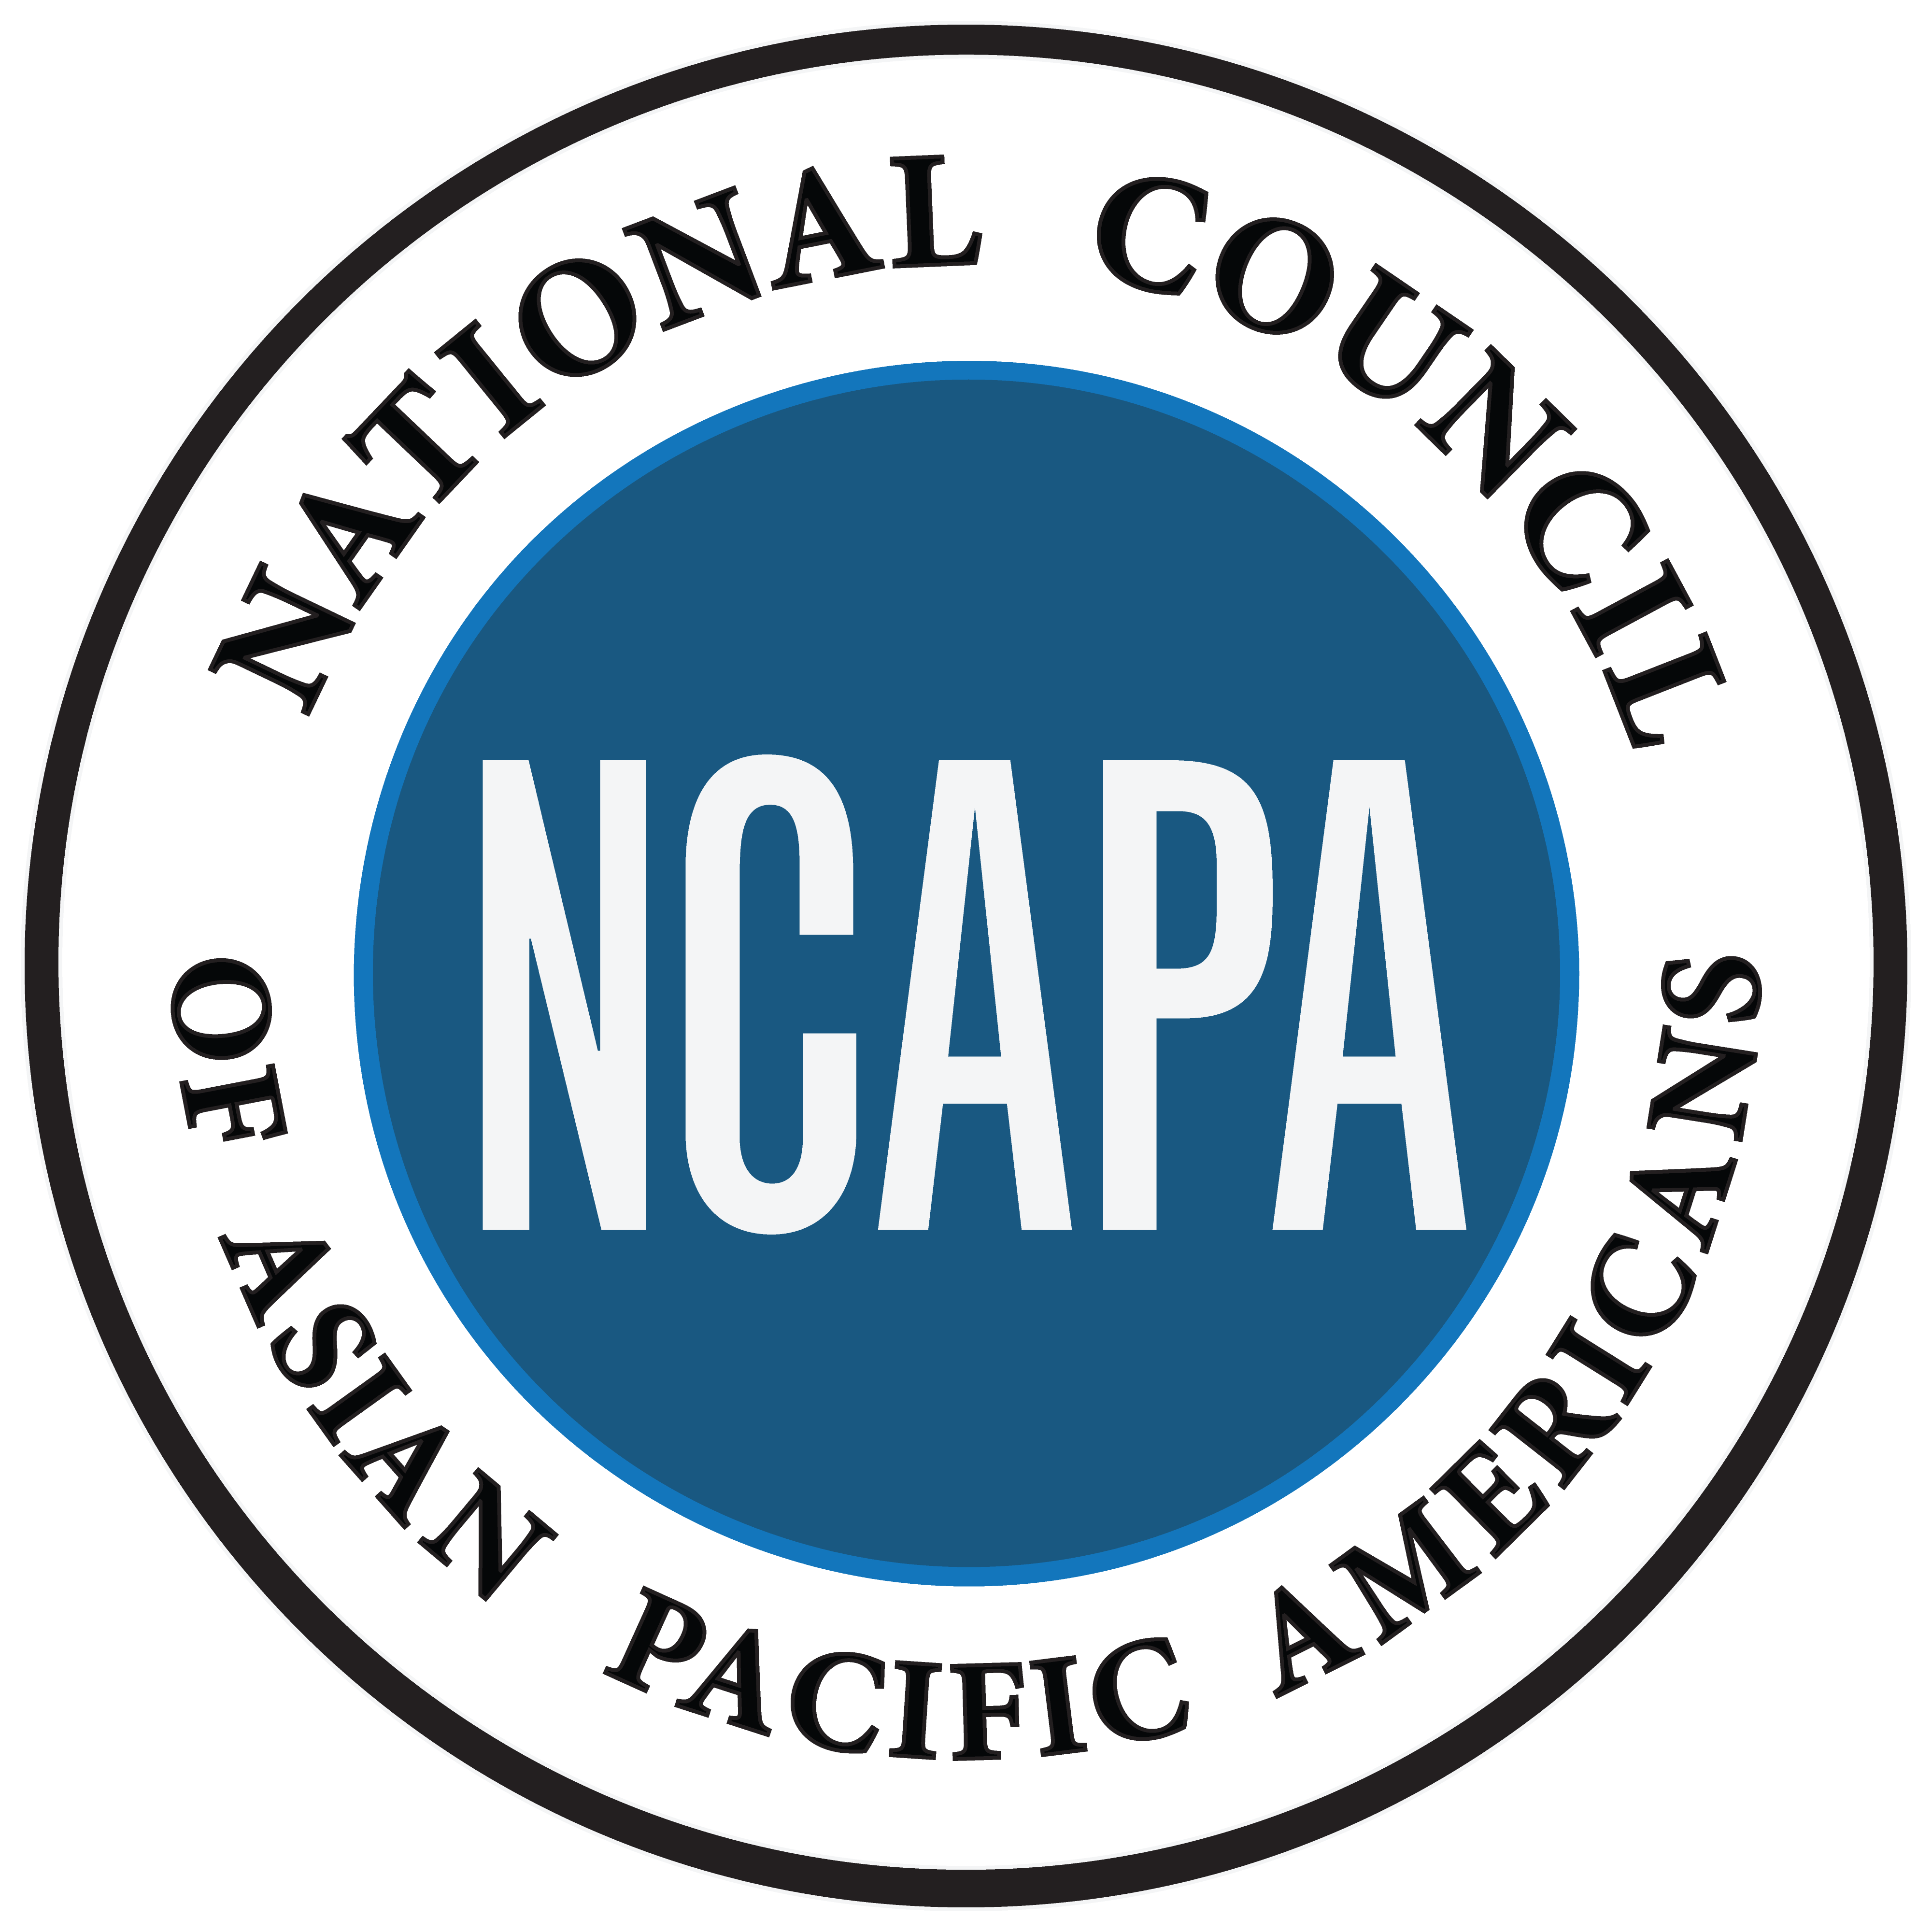 National Council of Asian Pacific Americans Logo